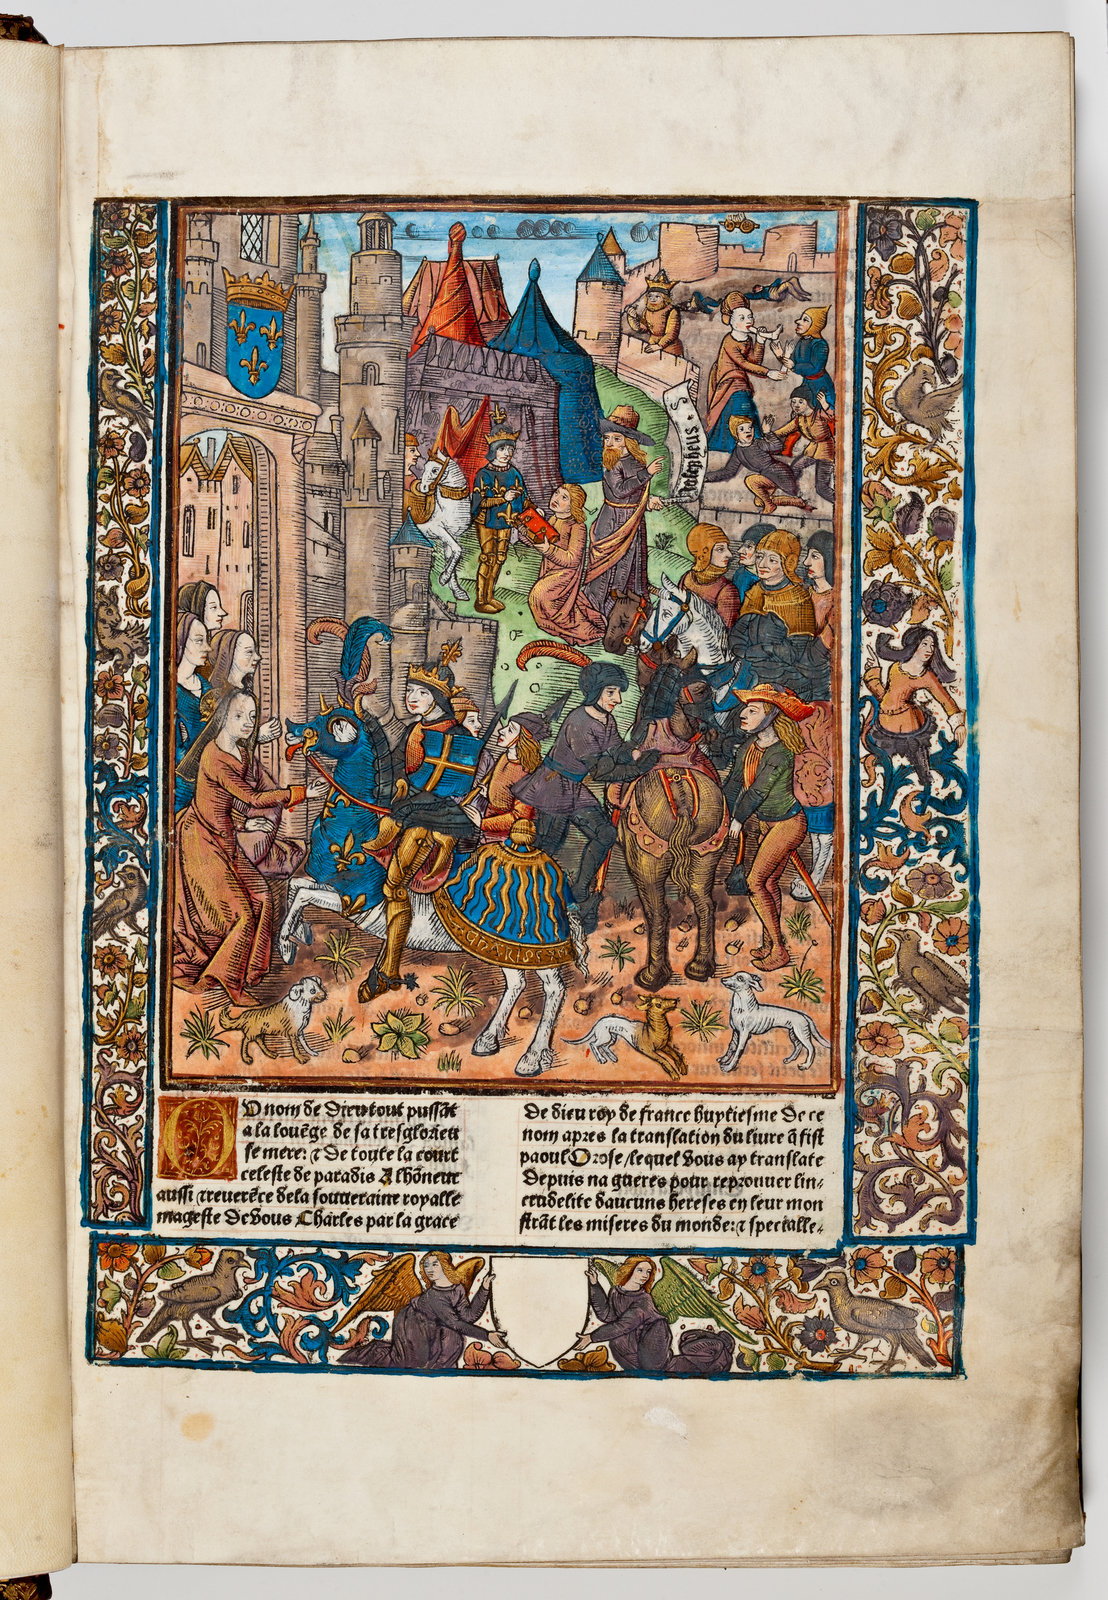 The printer, Anthoine Vérard, kneeling center, presents his book to the king of France, Charles VIII (1492). Behind Vérard, Josephus (died circa 93 CE), holding a scroll with his name on it to identify him as the author, looks on approvingly. Behind Josephus, a scene of mayhem typical of The Jewish War plays itself out. In the foreground, a mounted King Charles enters Paris, and, center right, Charles's servants hold his horse while he receives the book from Vérard.